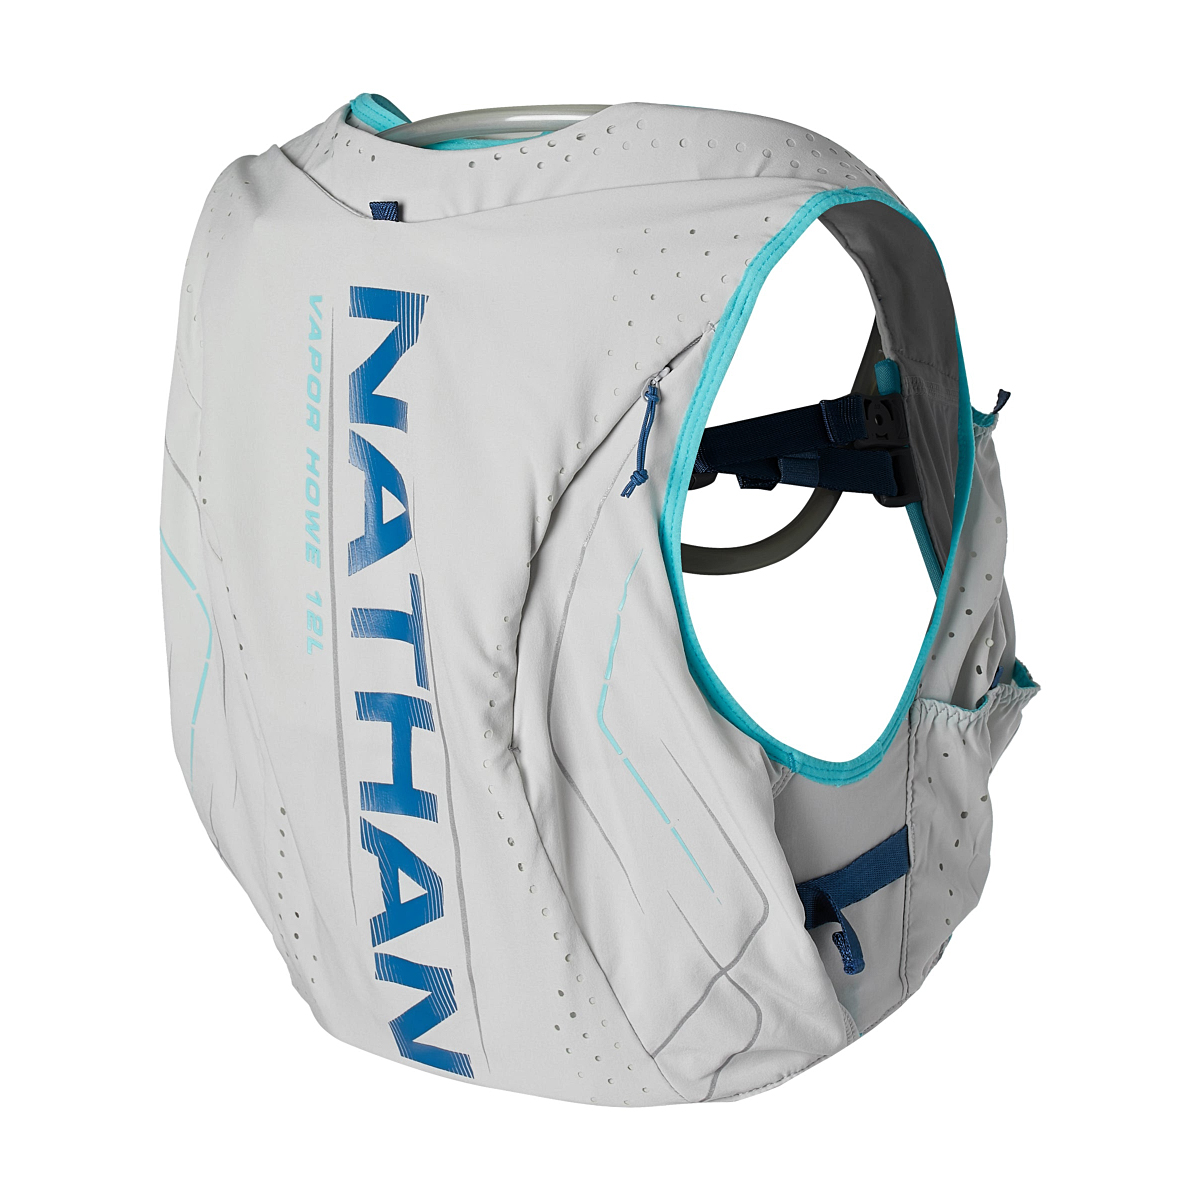 Women's Nathan Vaporhowe 2.0 12 Liter Race Vest - Color: Vapor Blue/True Navy - Size: XS, Vapor Blue/True Navy, large, image 2